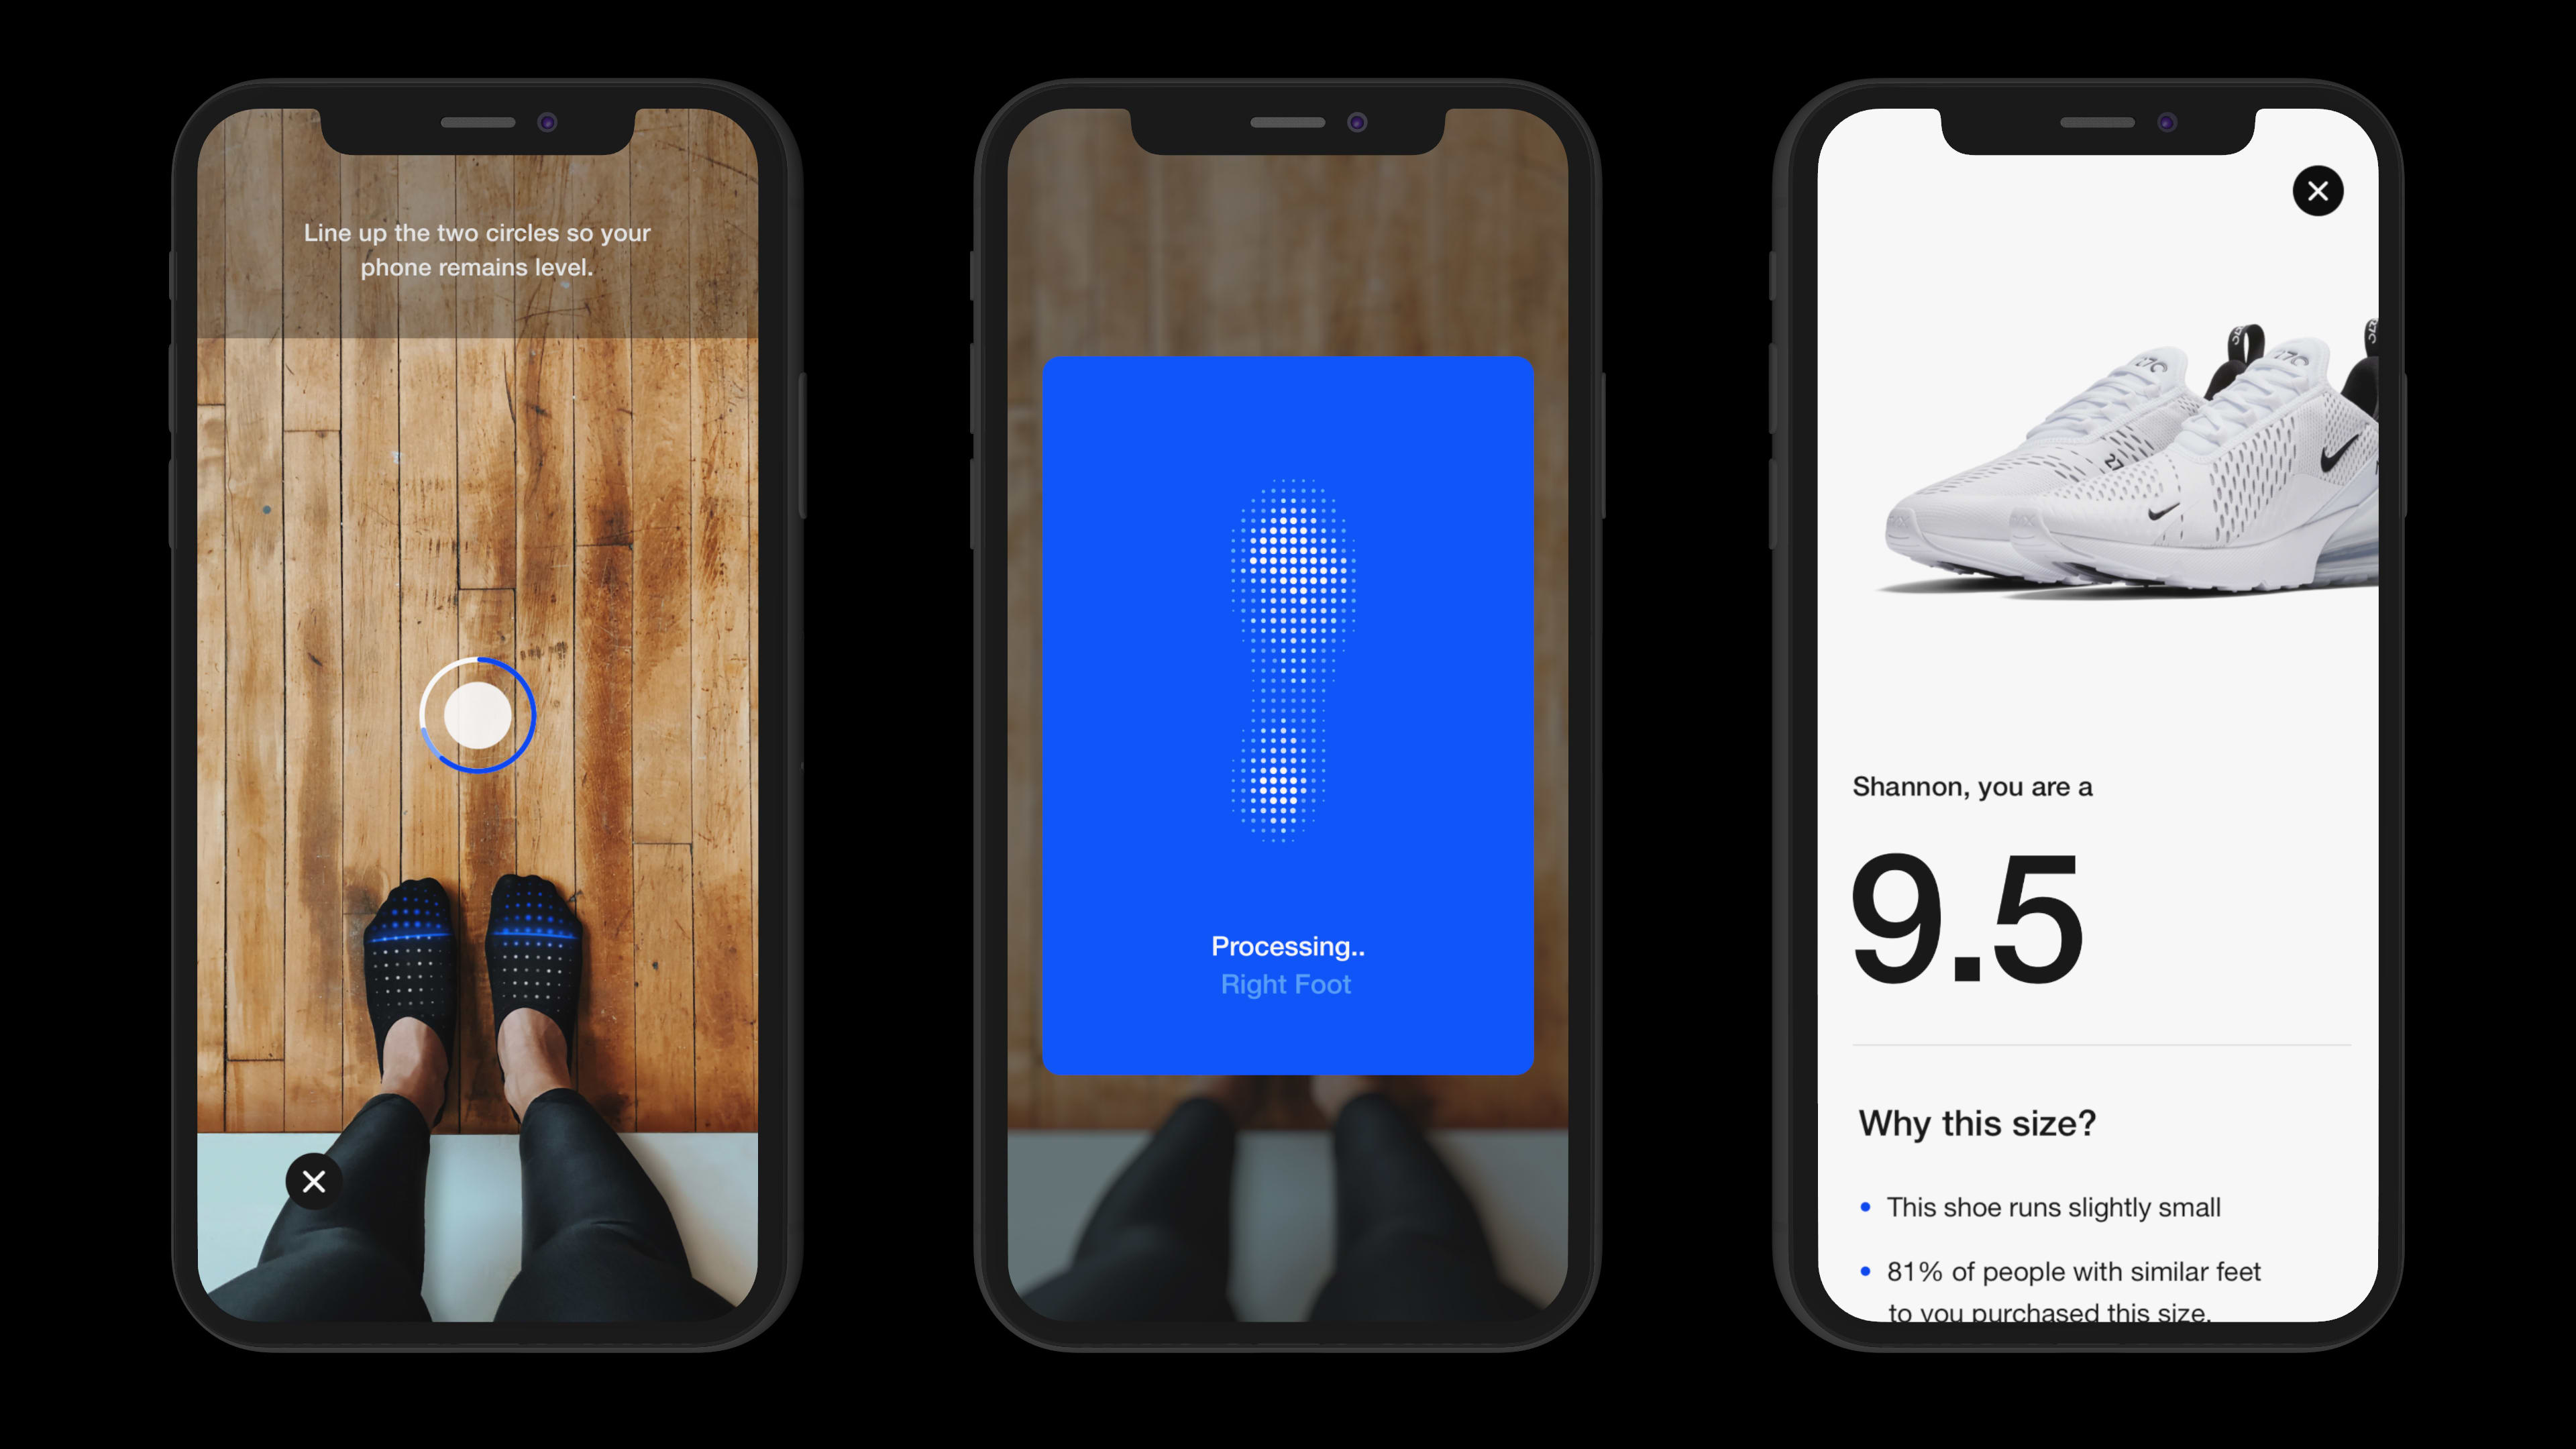 f3fac4d63ec Nike s app will soon be able to scan your foot and tell you your shoe size.  Here s how it ll work